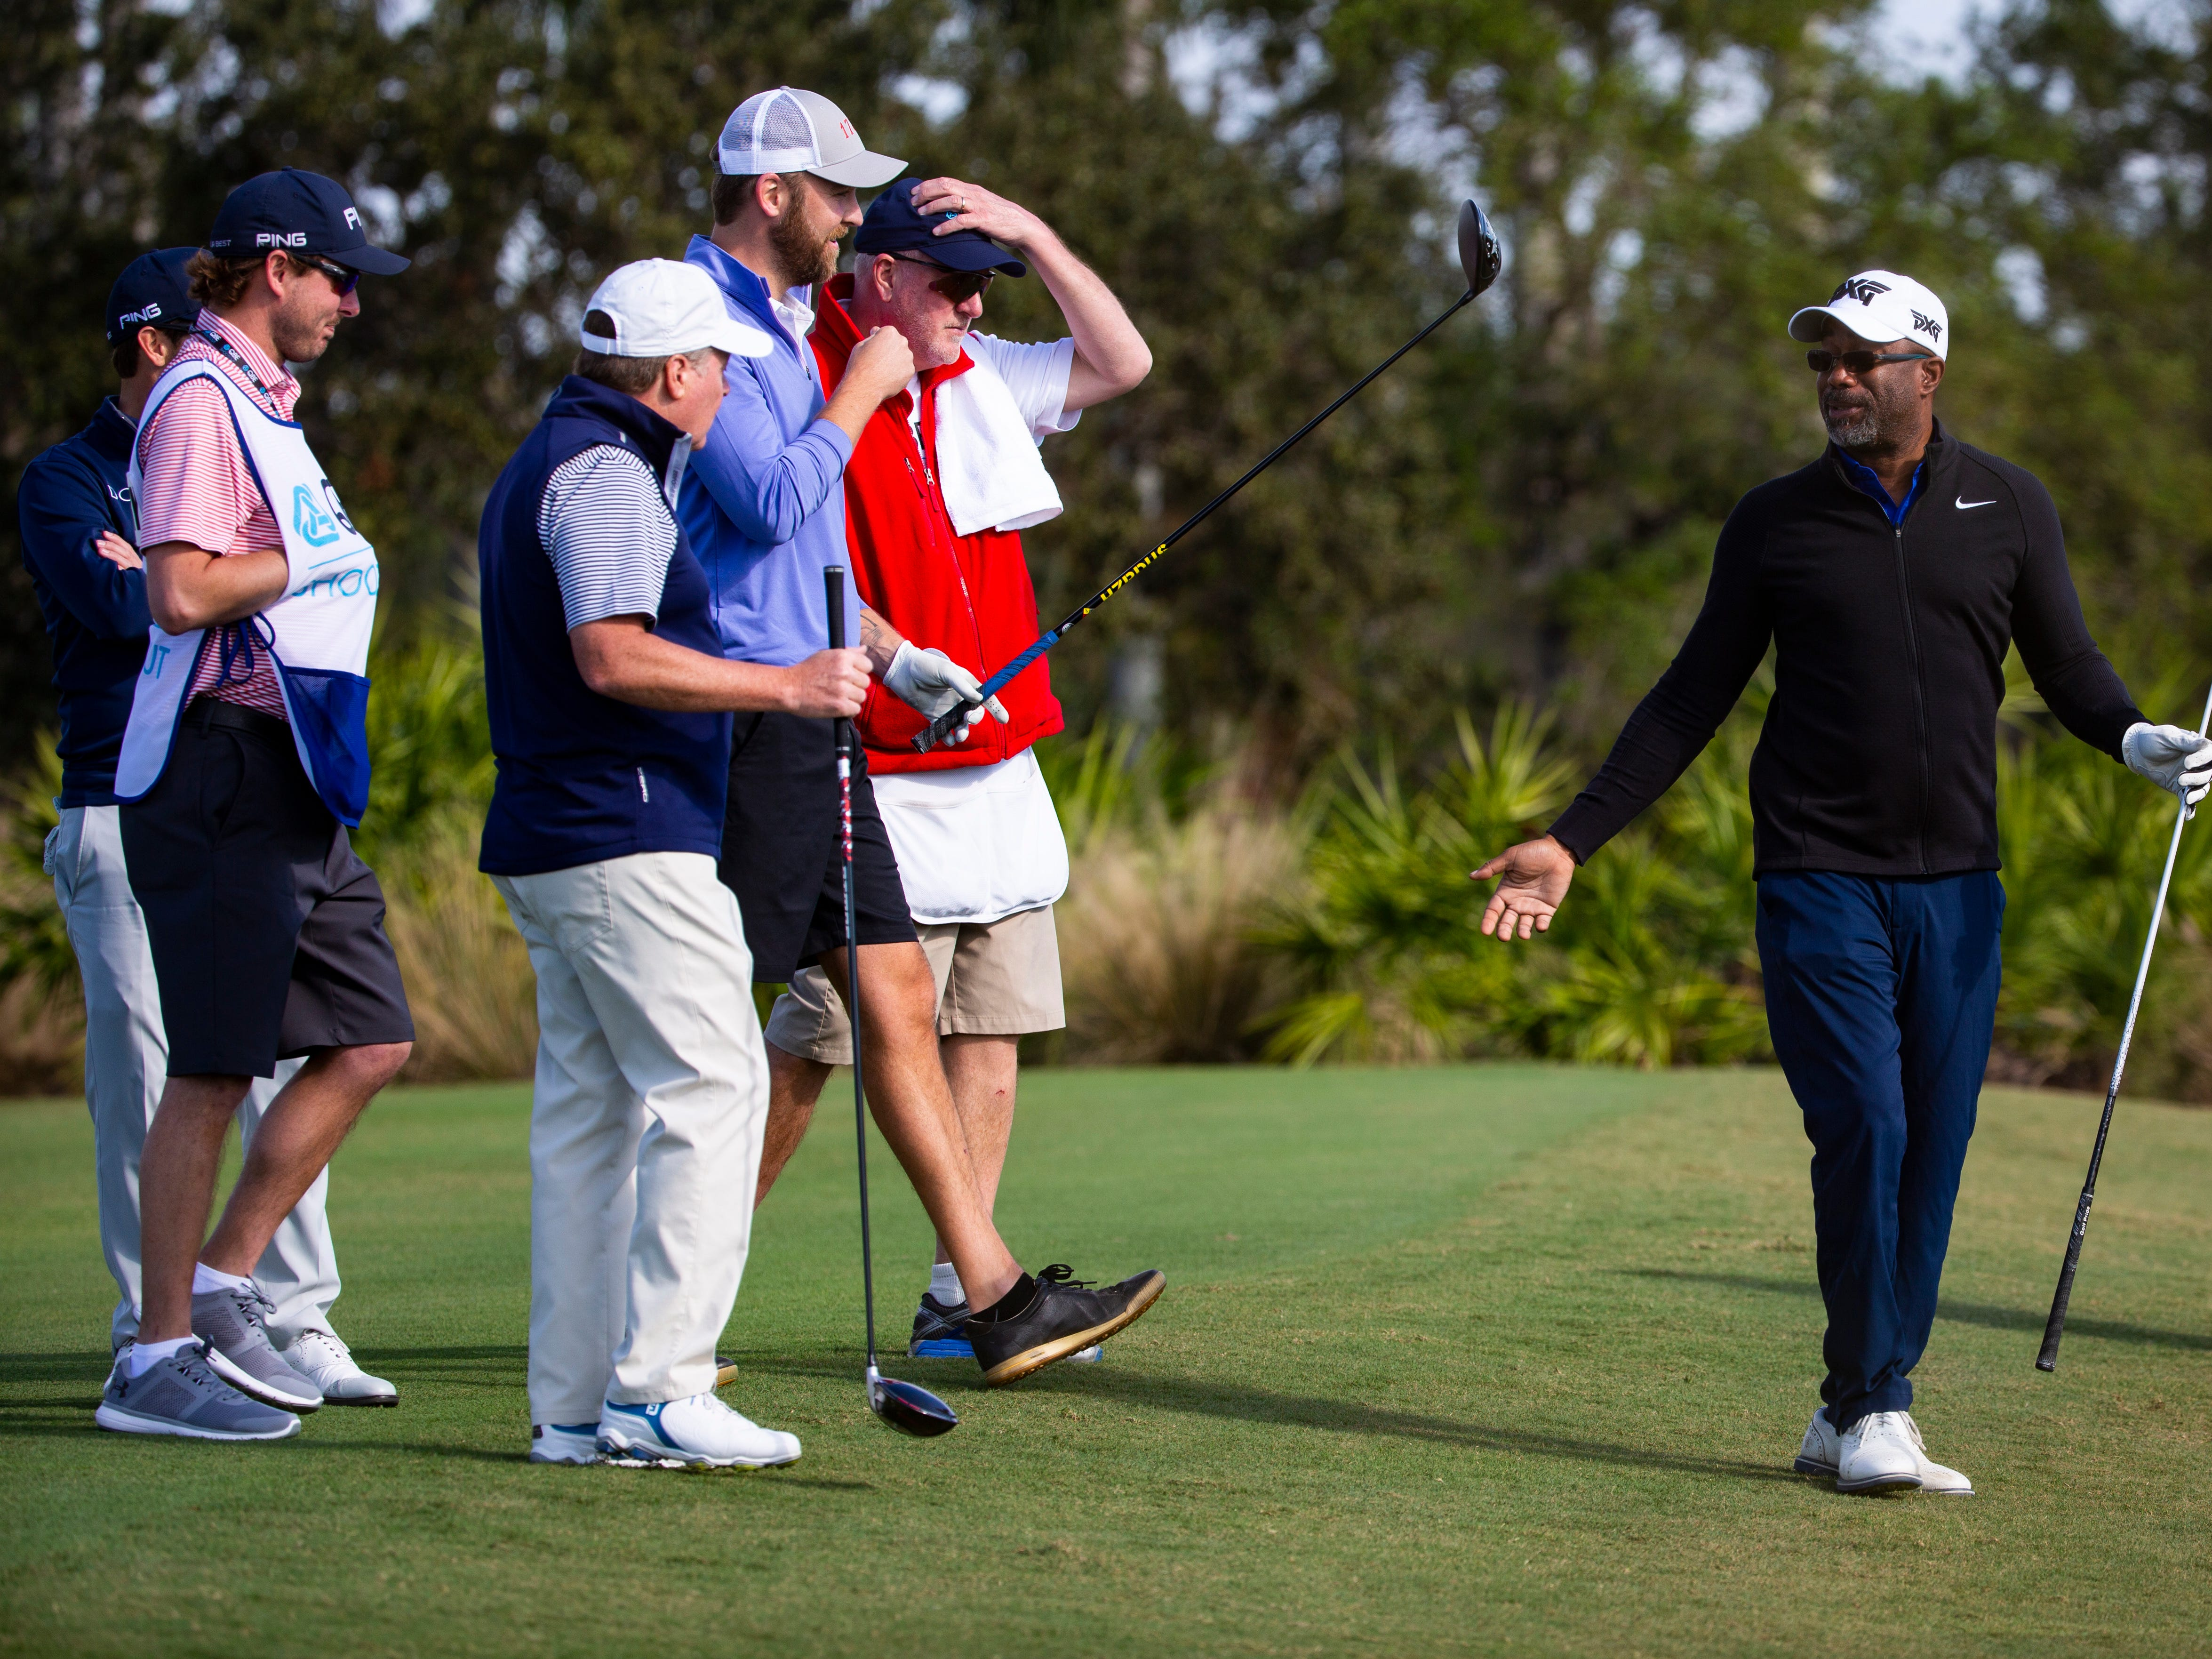 American singer-songwriter, Darius Rucker of the band Hootie & the Blowfish, reacts after a swing during the first Pro - Amateur round of the 30th annual QBE Shootout at Tiburón Golf Club on Wednesday, Dec. 5, 2018.